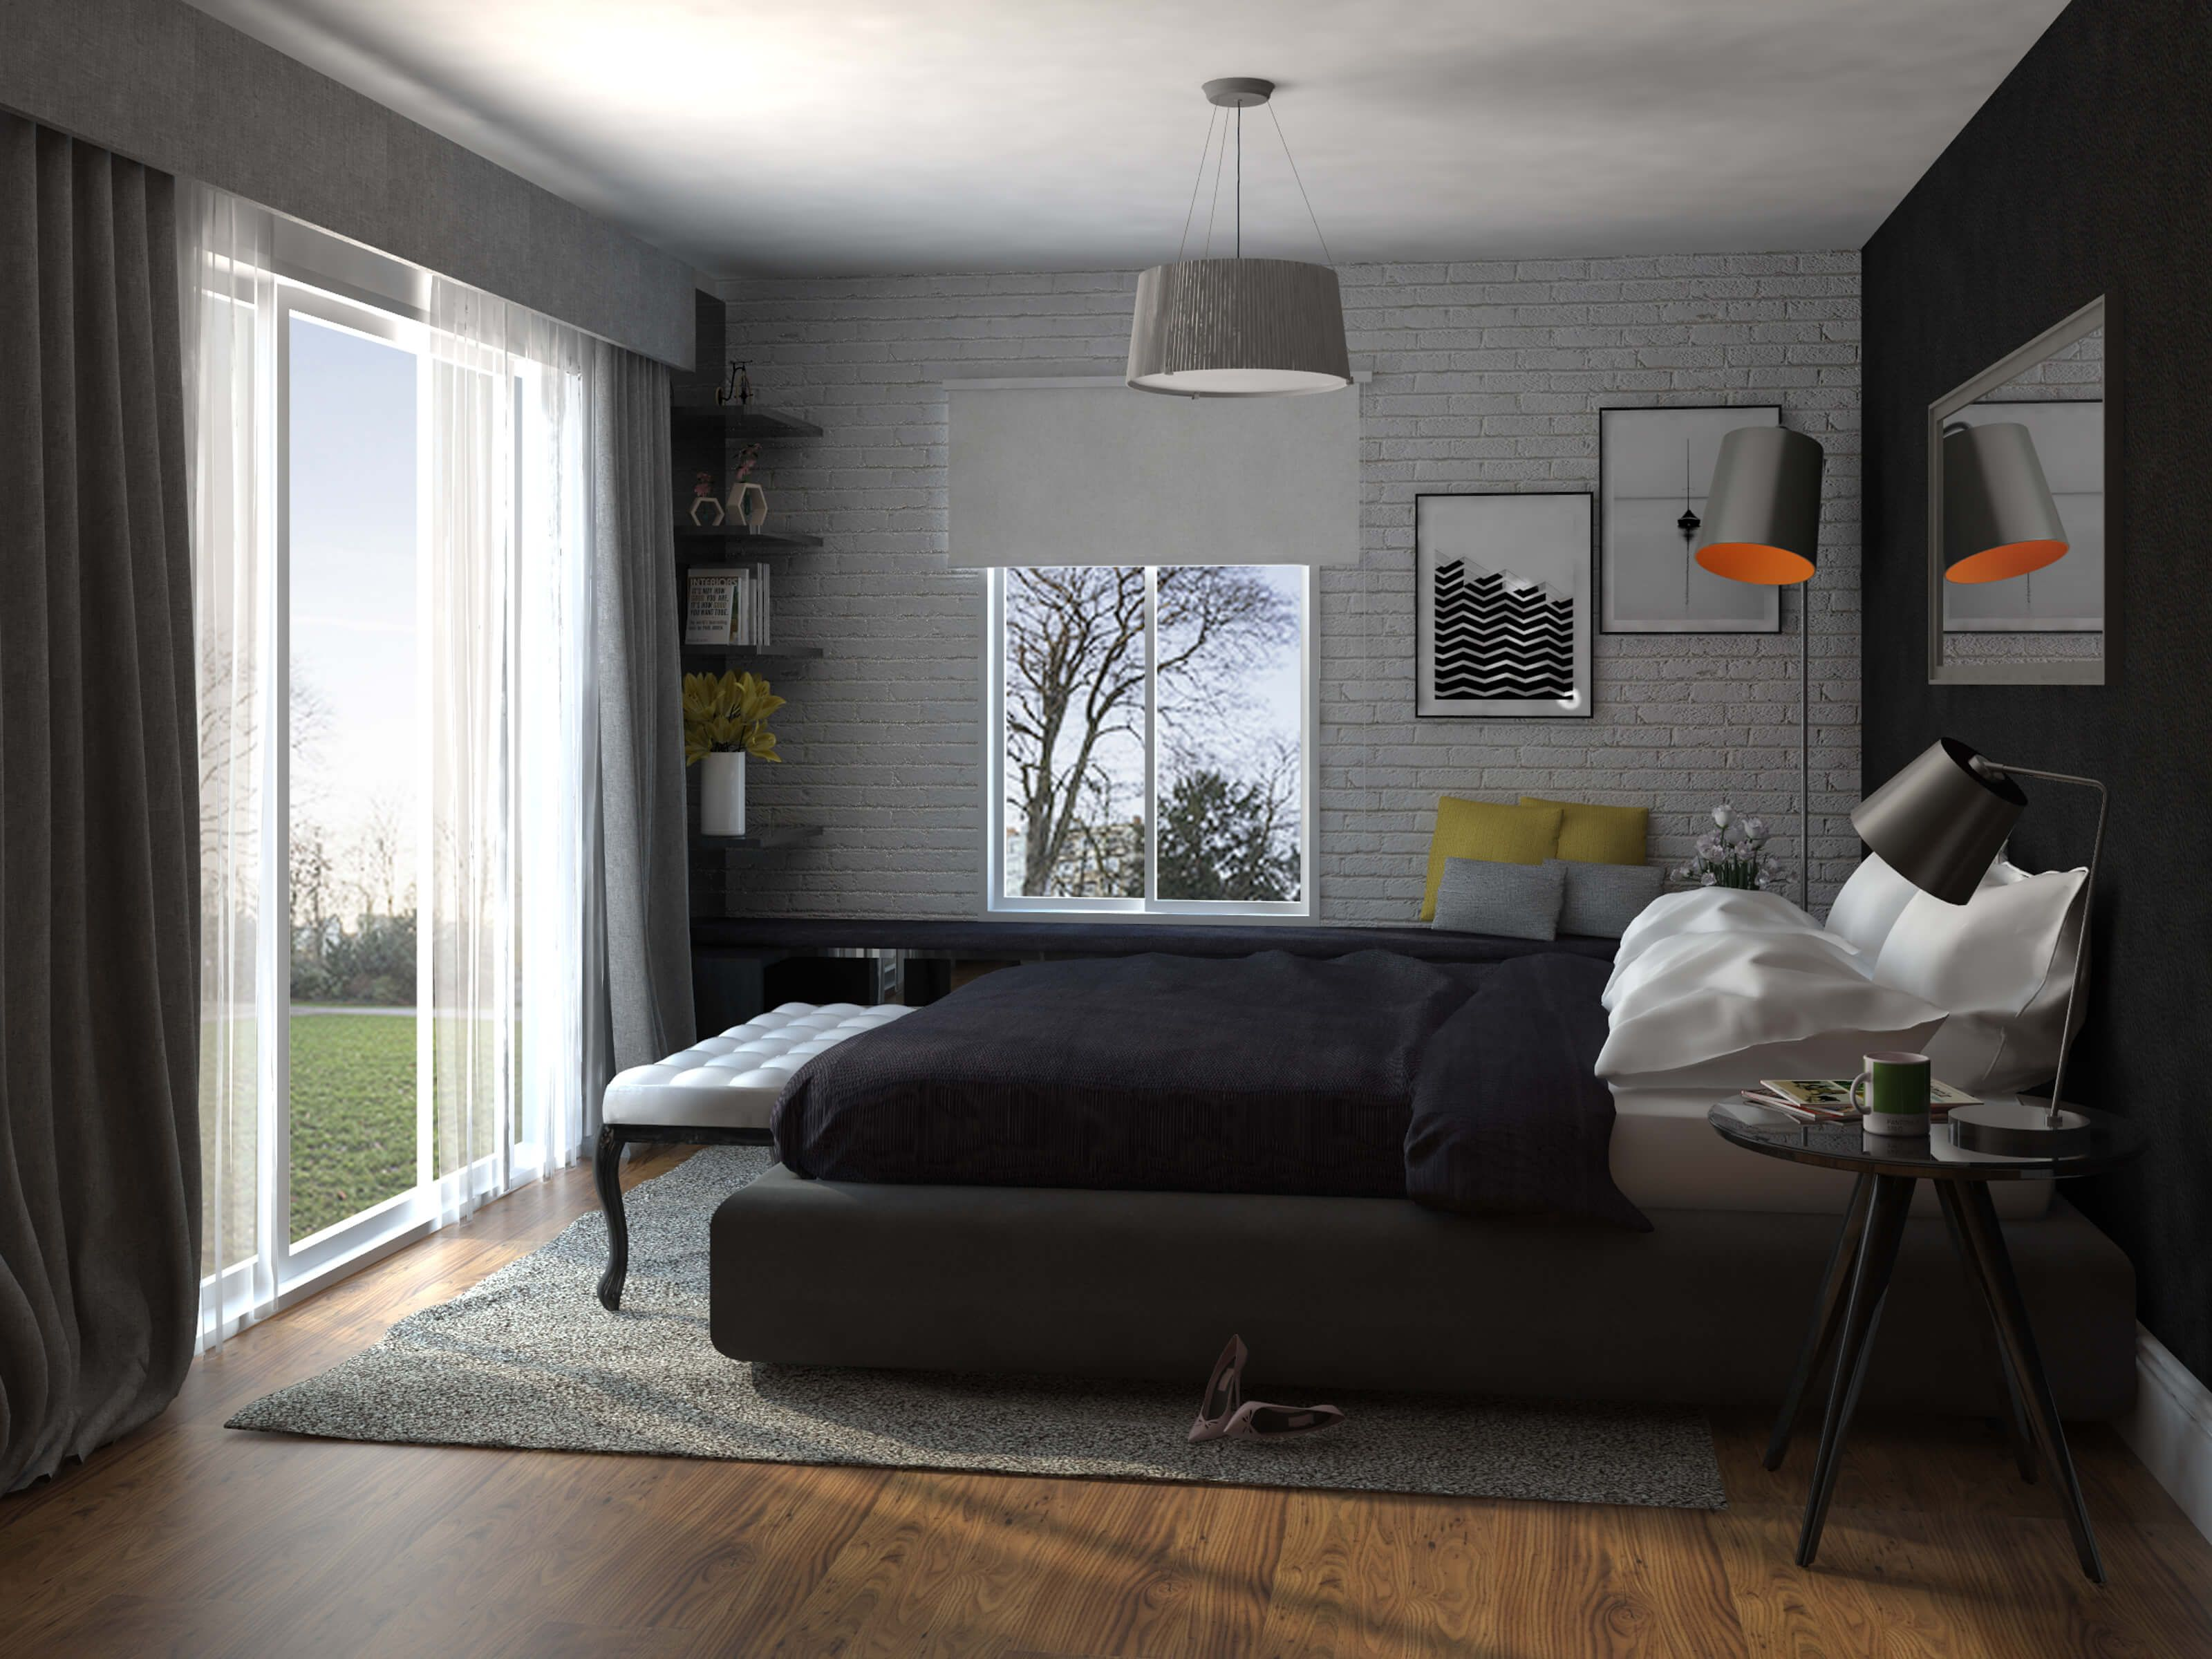 Awesome Before And After Bedroom Renovation Ideas